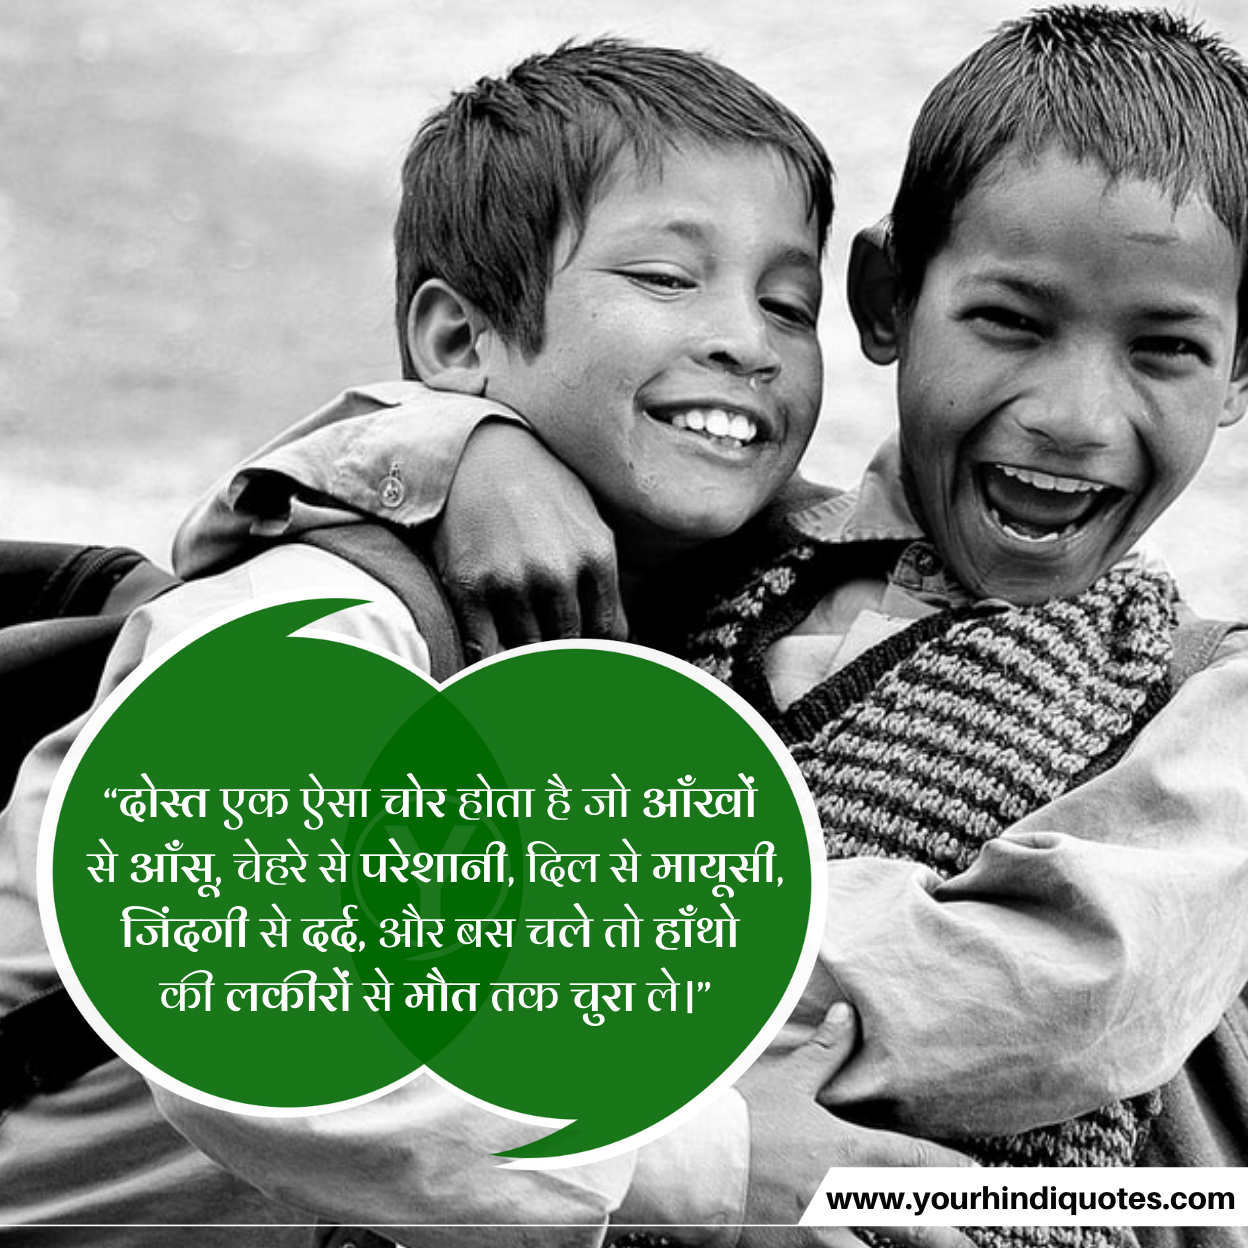 Emotional Hindi quotes photos